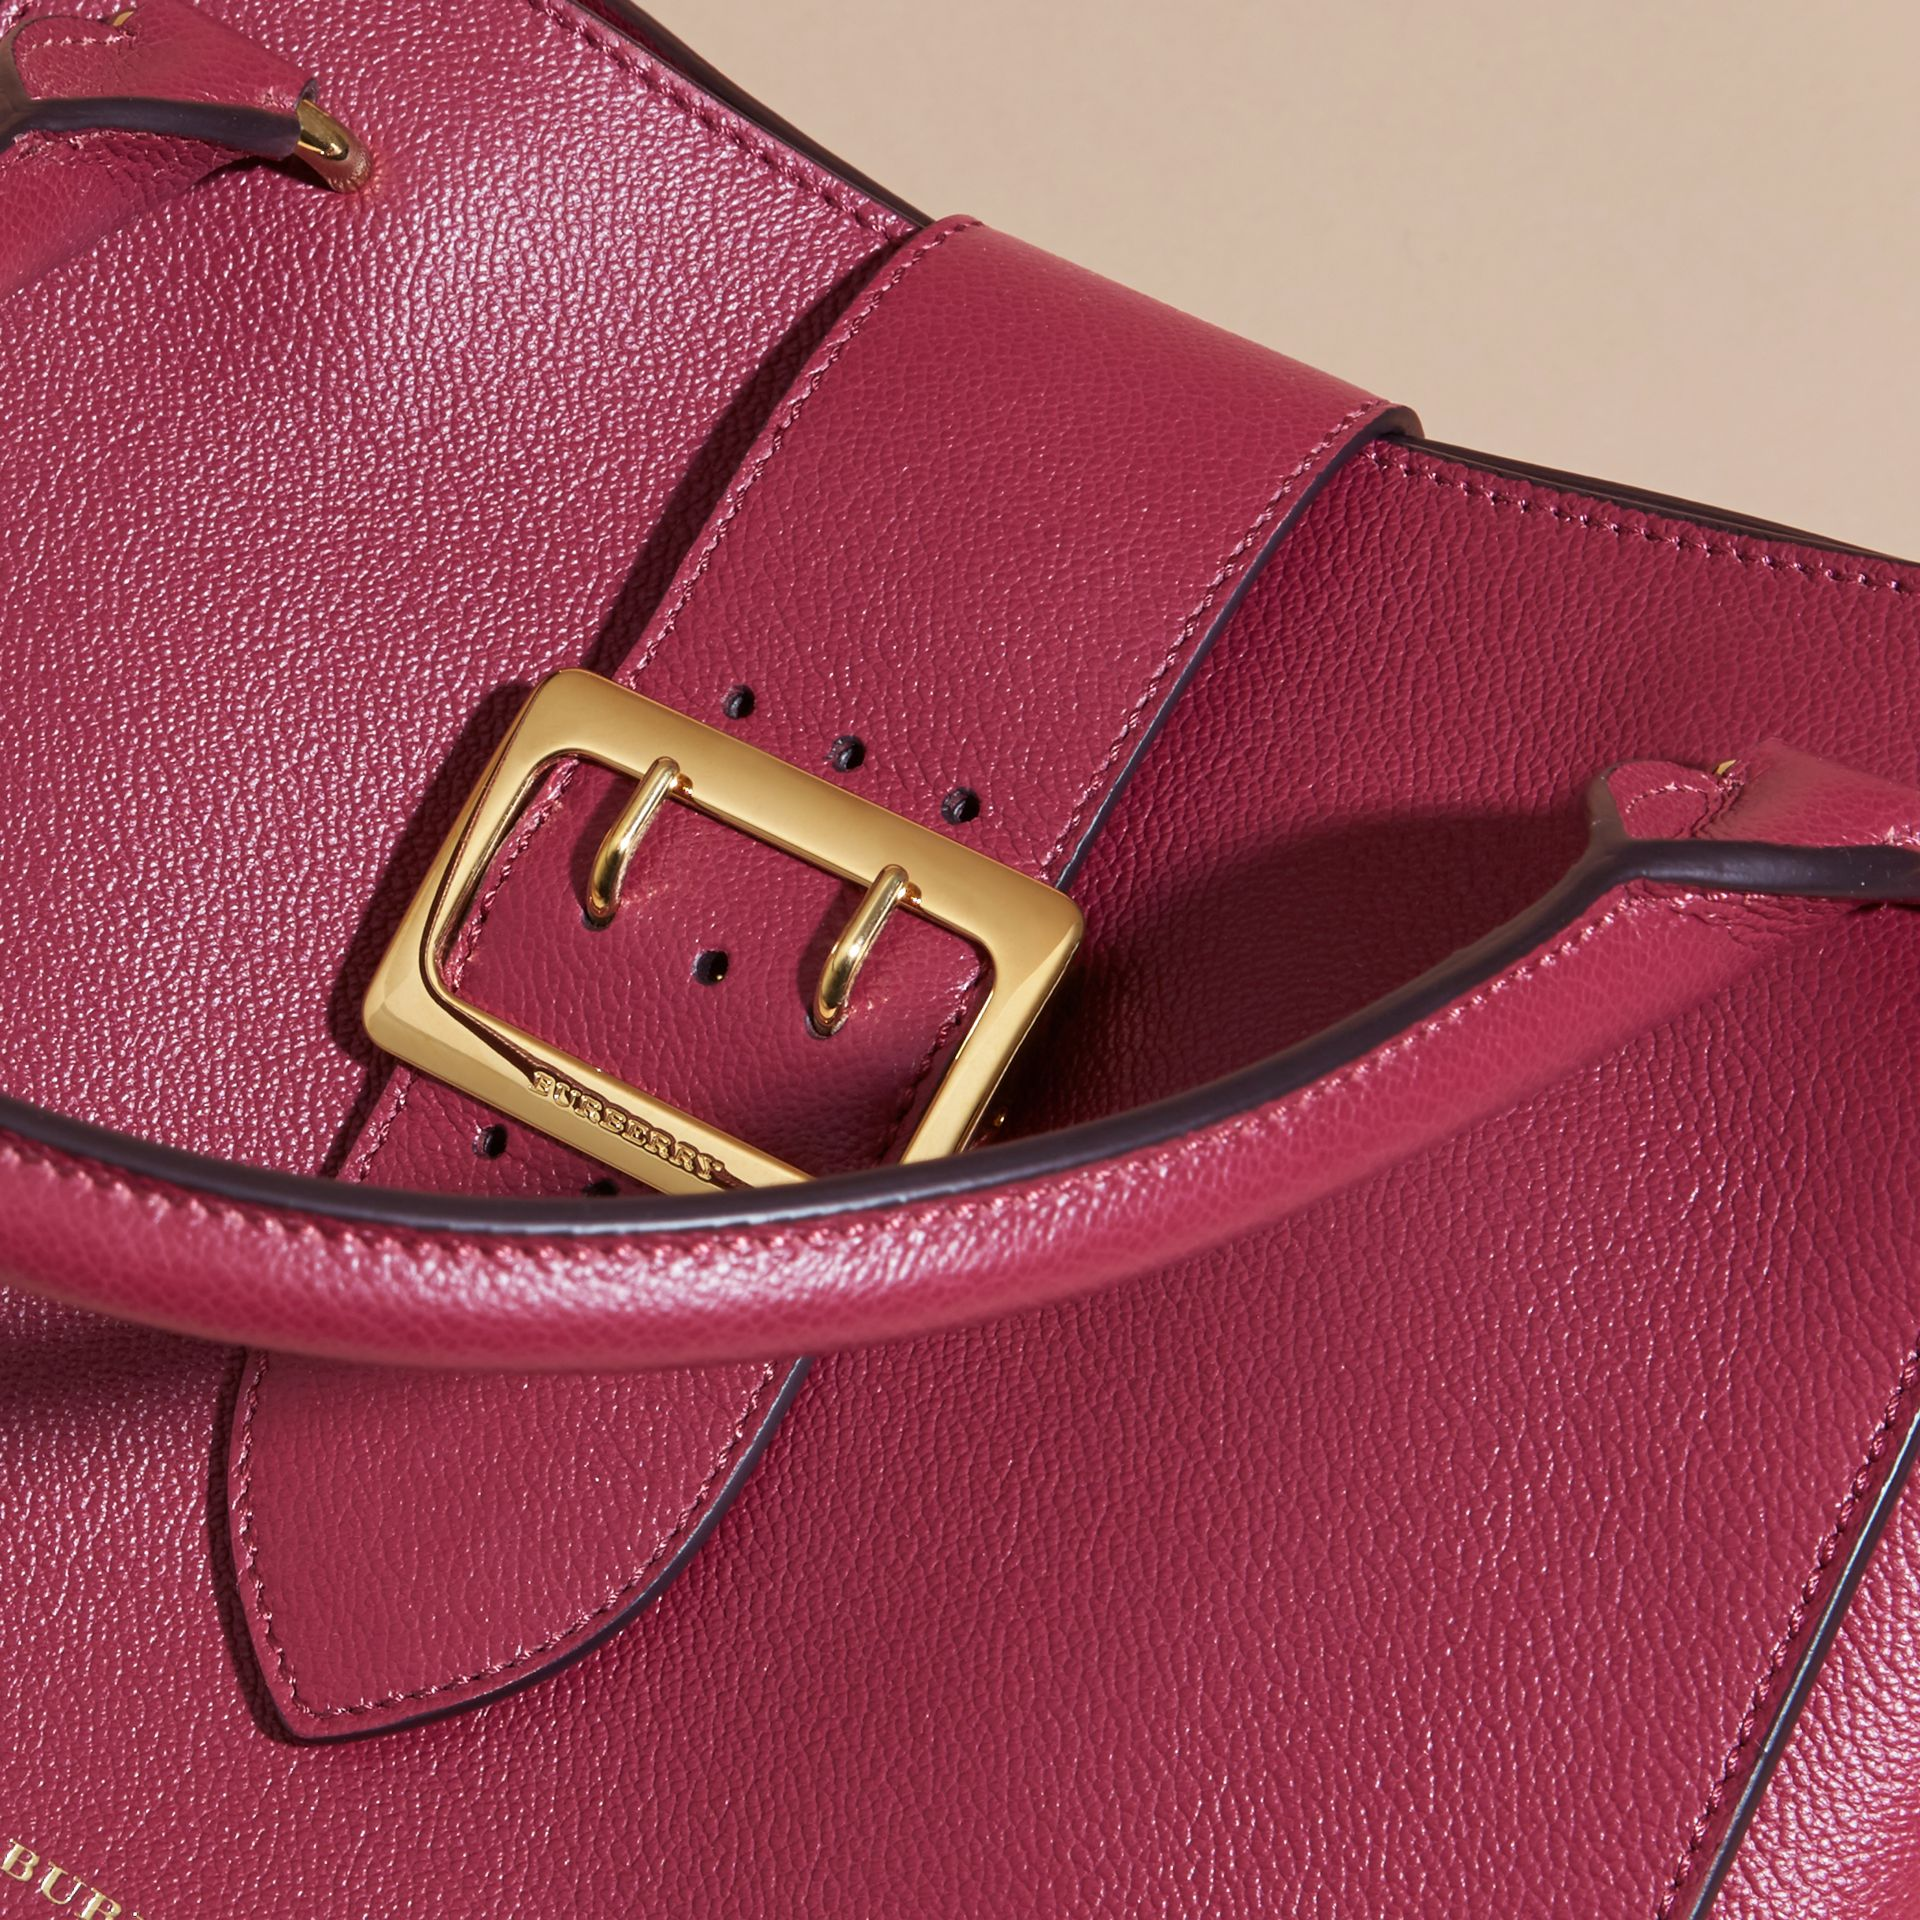 Dark plum The Medium Buckle Tote in Grainy Leather Dark Plum - gallery image 2